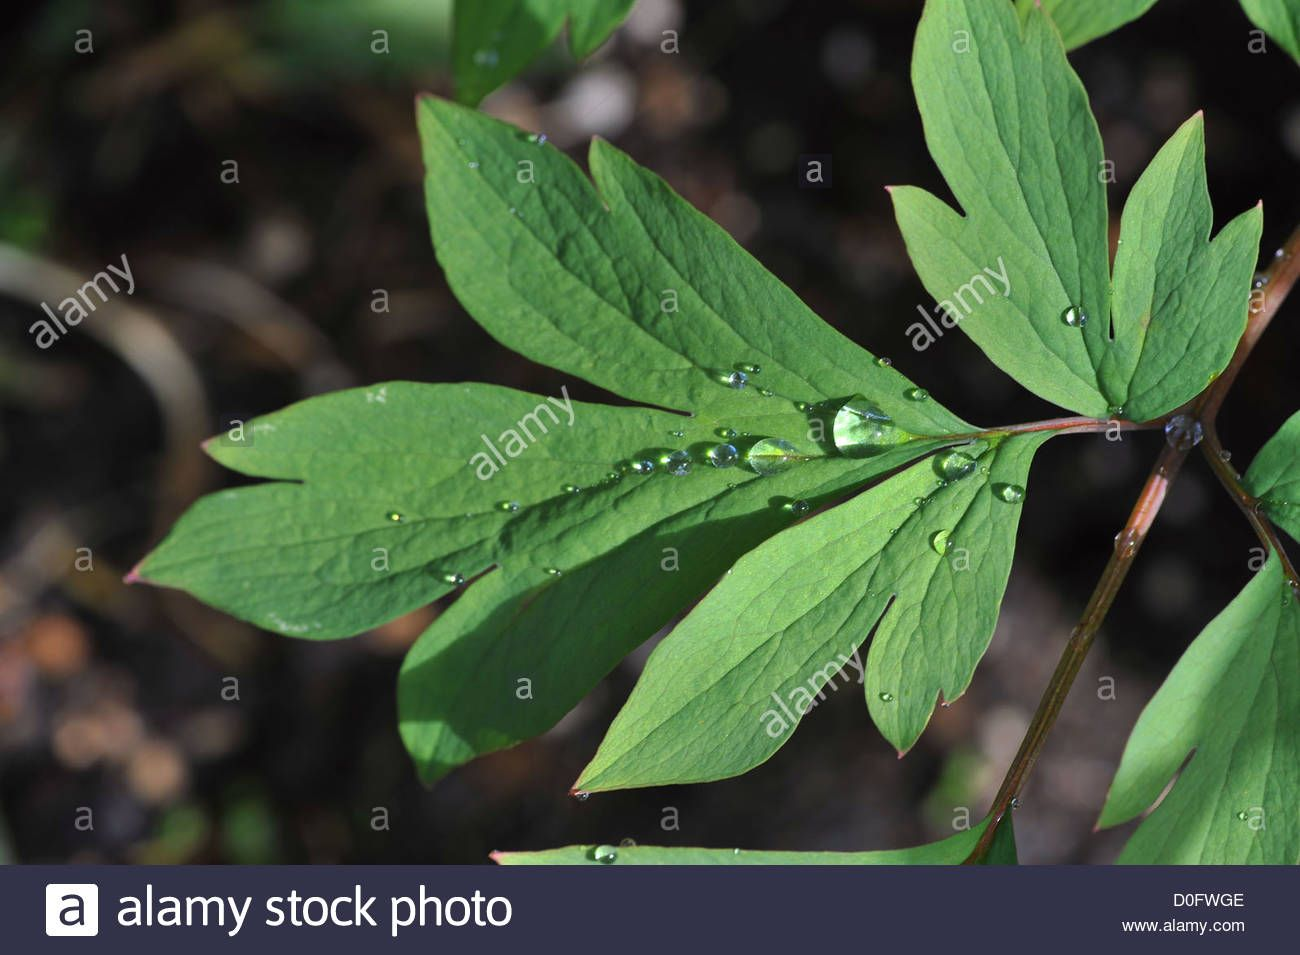 Green Leaves Of A Bleeding Heart Plant With Raindrops Stock Photo Bleeding Heart Bleeding Heart Plant Plants